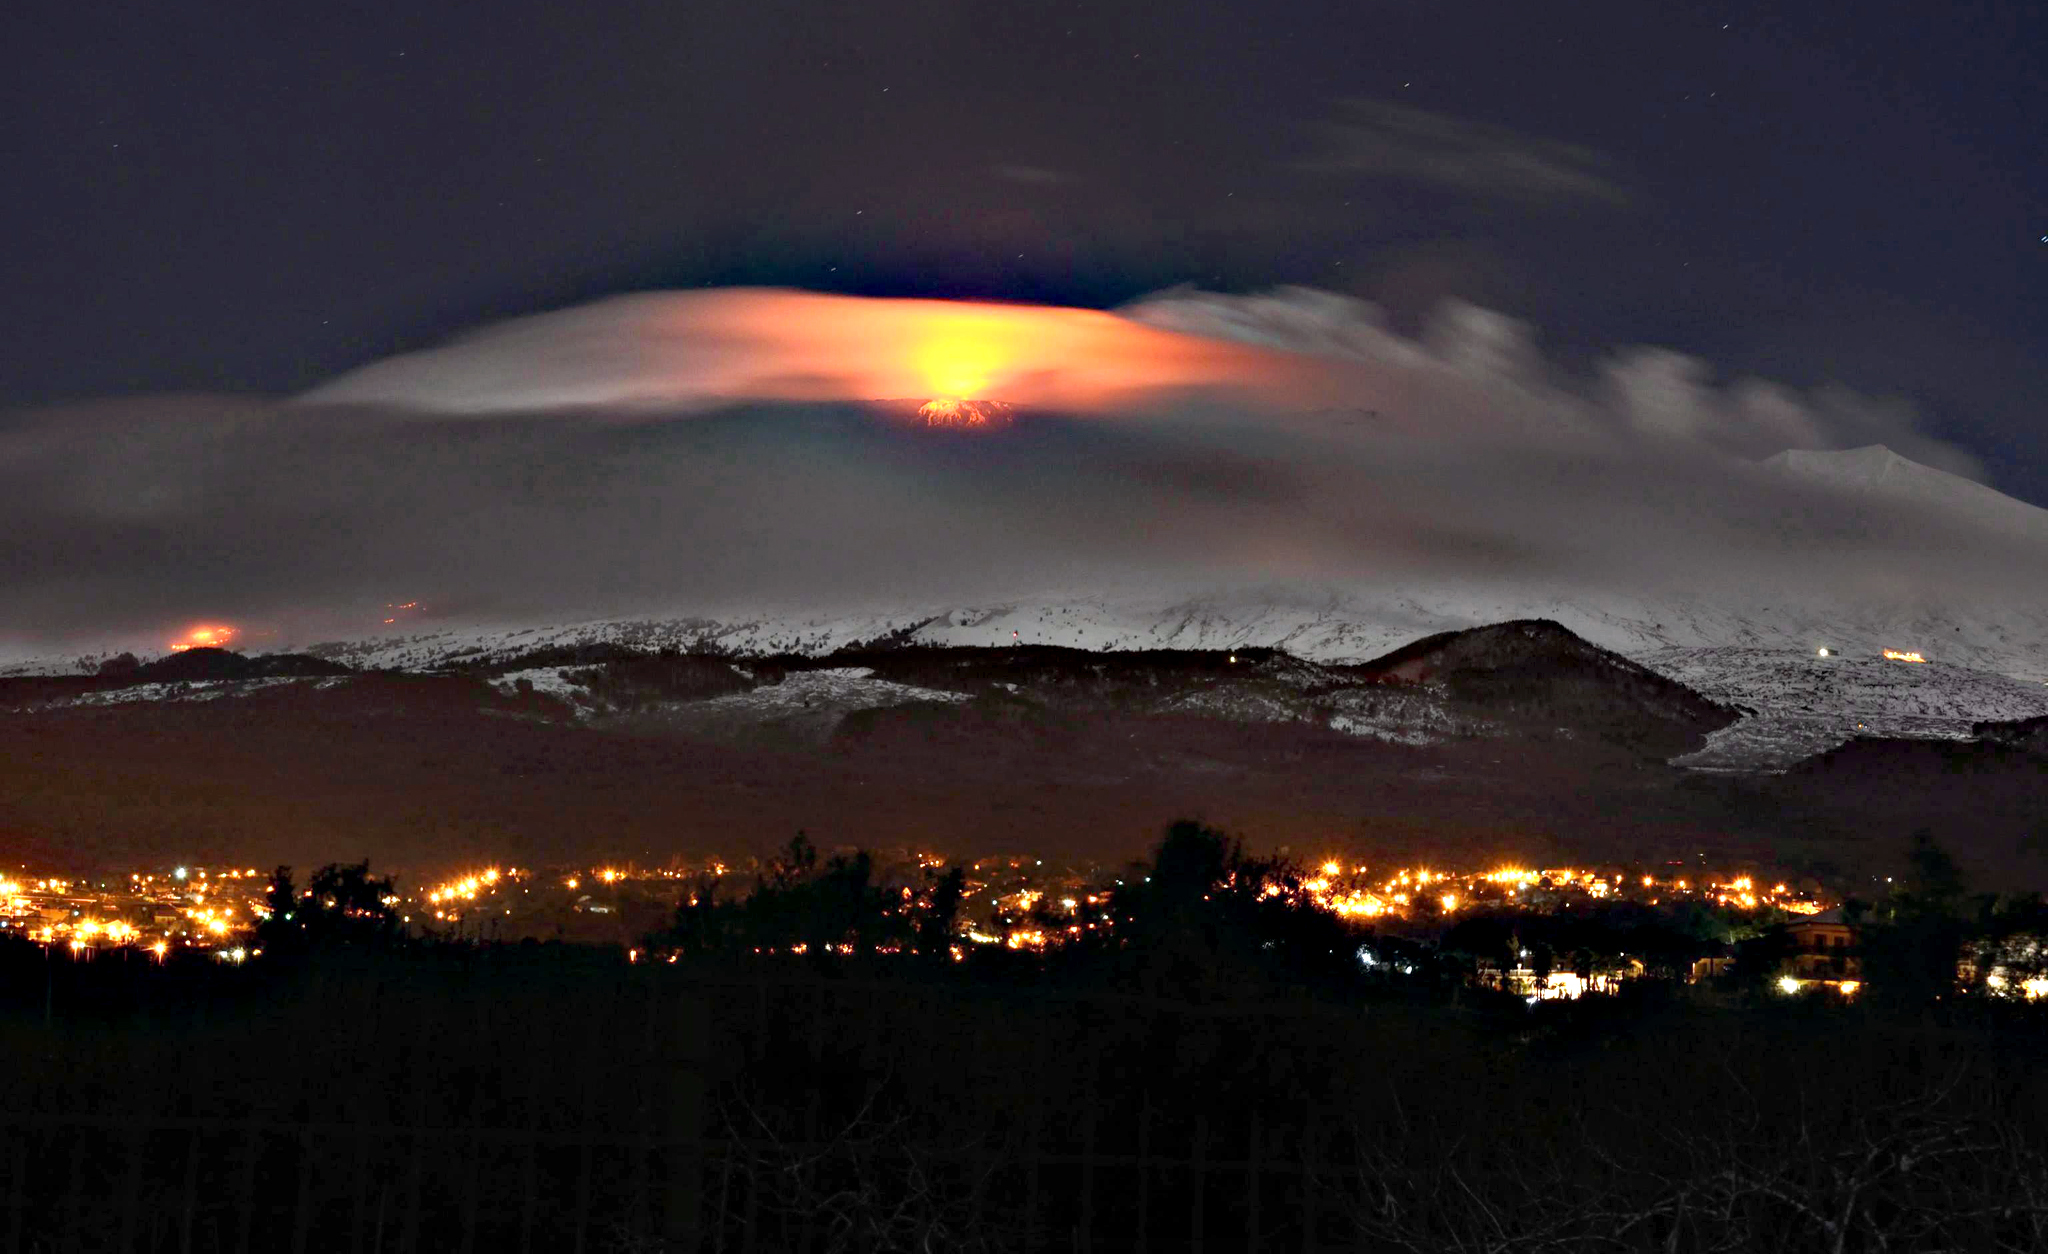 A volcanic eruption illuminates the clouds around the Etna volcano, near Catania, Sicily island, southern Italy, early 02 February 2015. The eruptions are reported to have begun on 31 January 2015 at Mount Etna's new south east crater